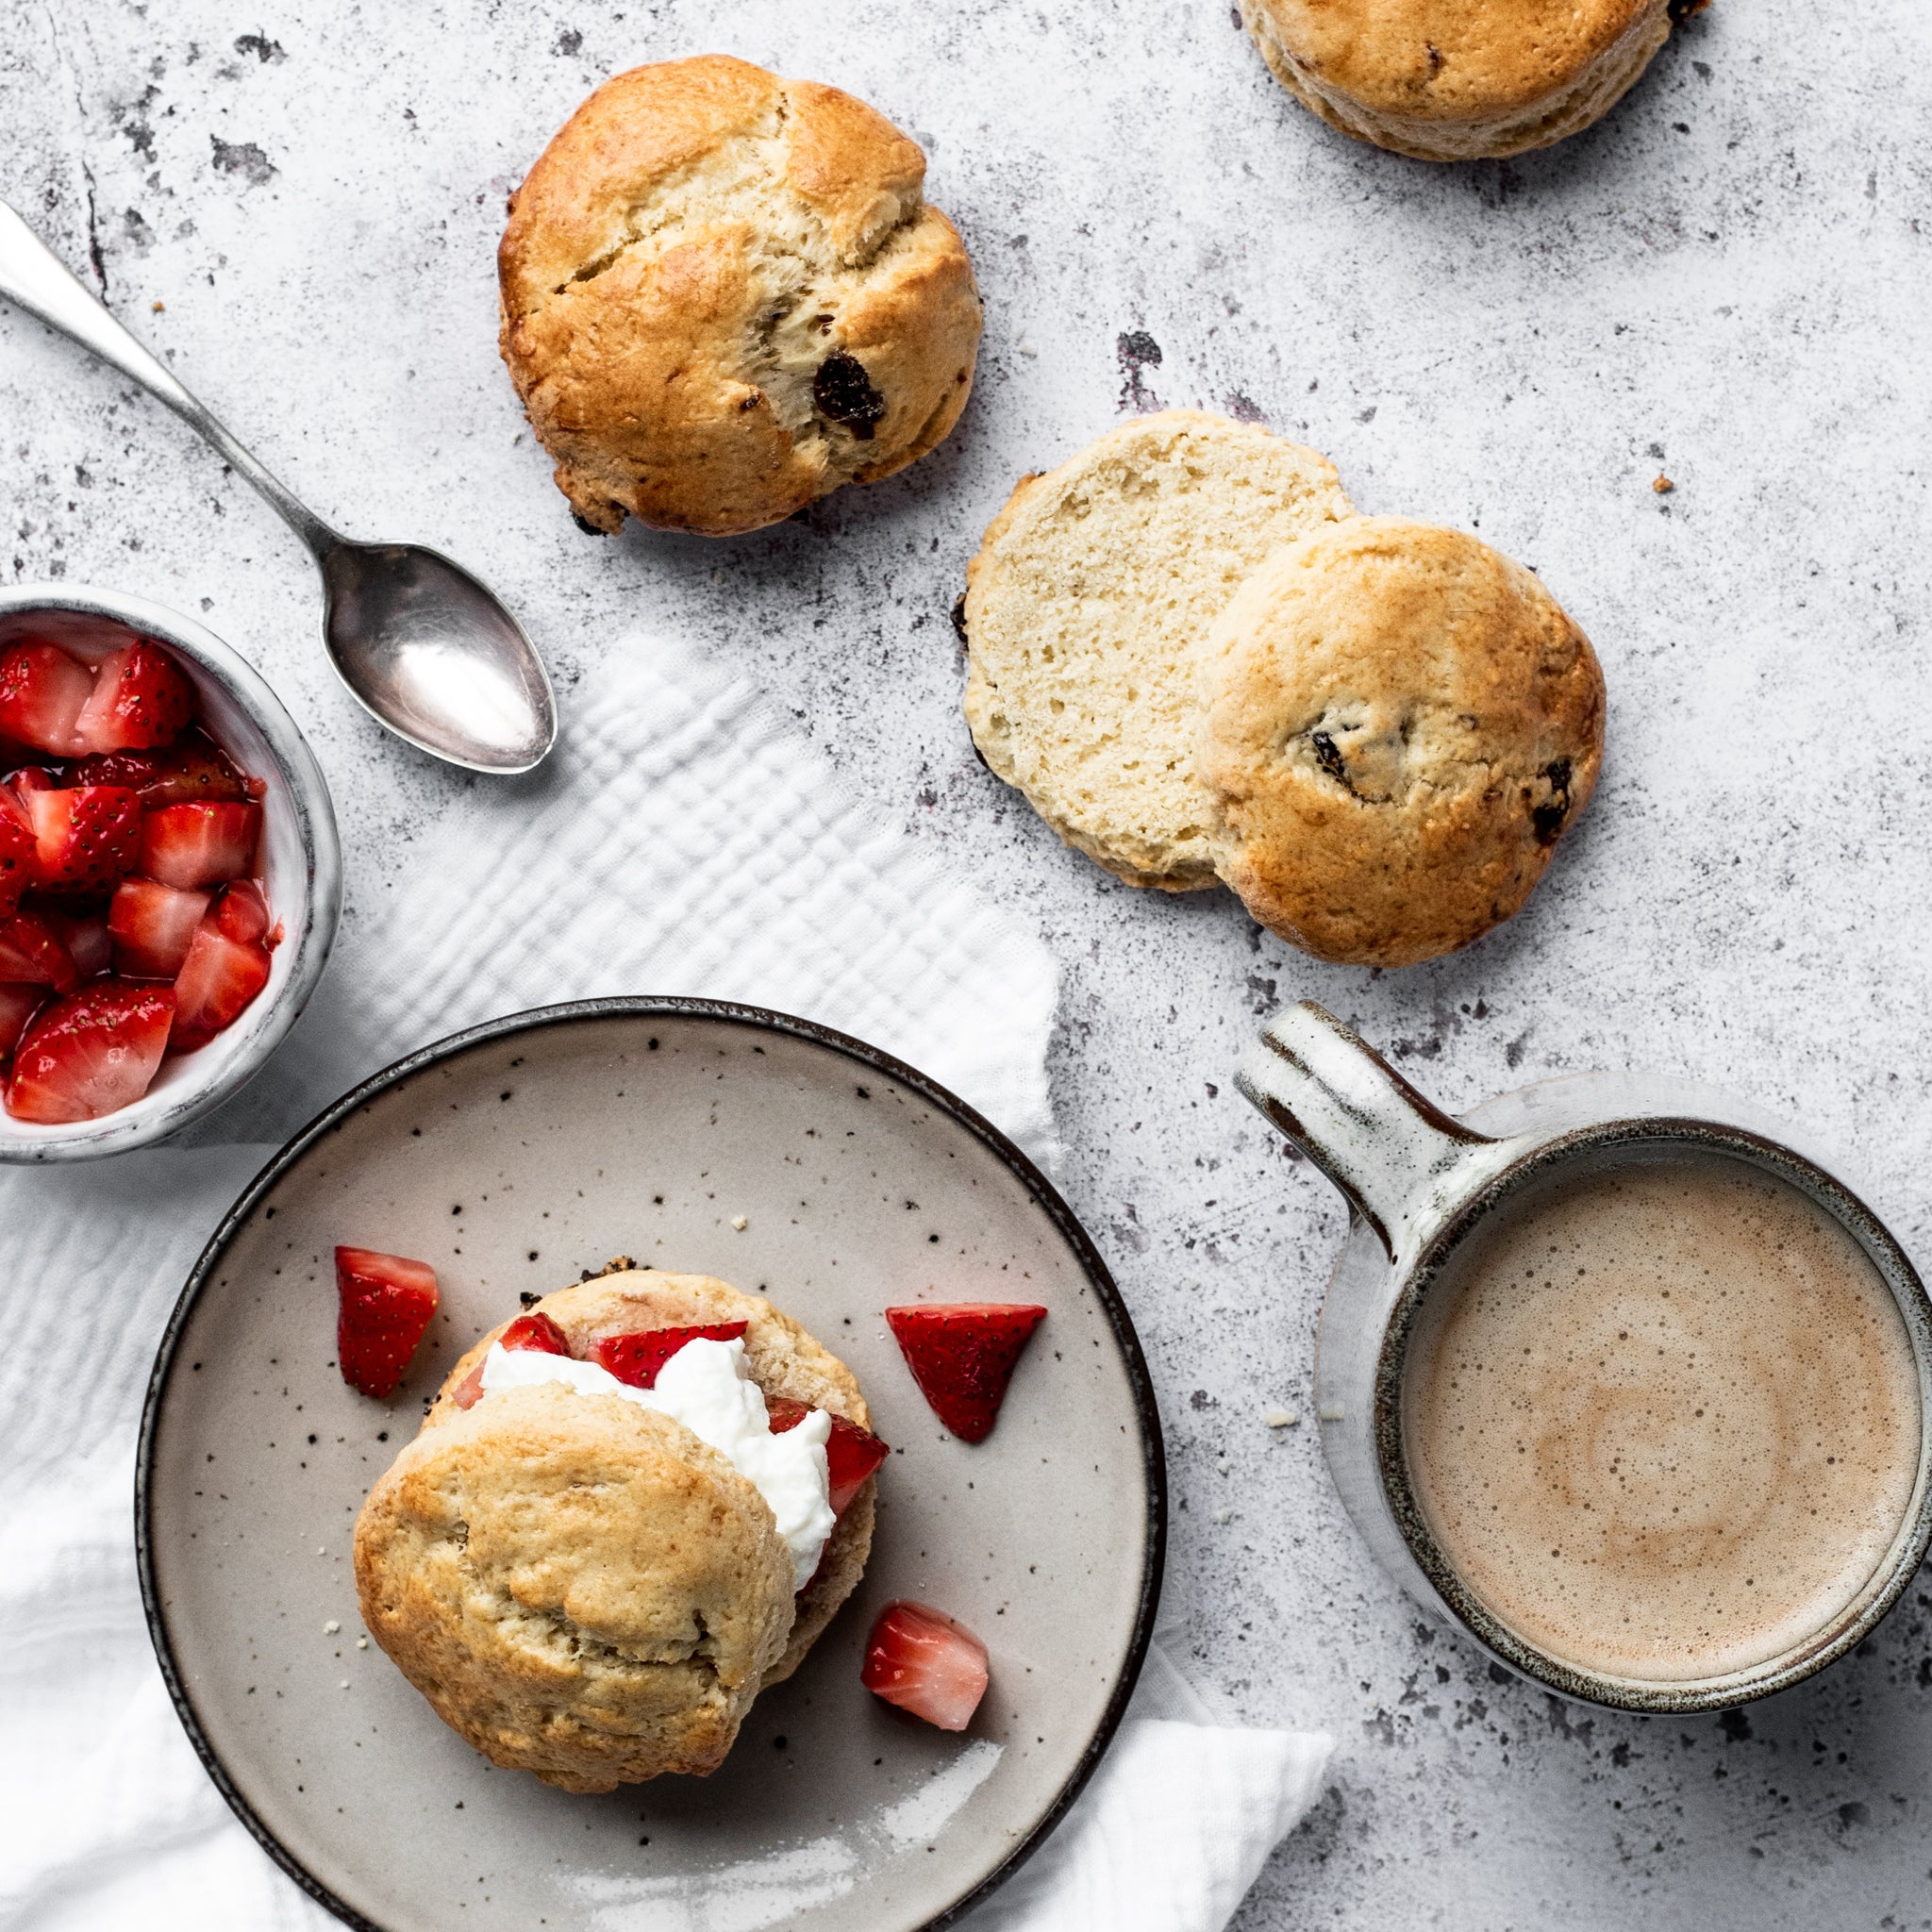 scone with strawberries and cream on a plate